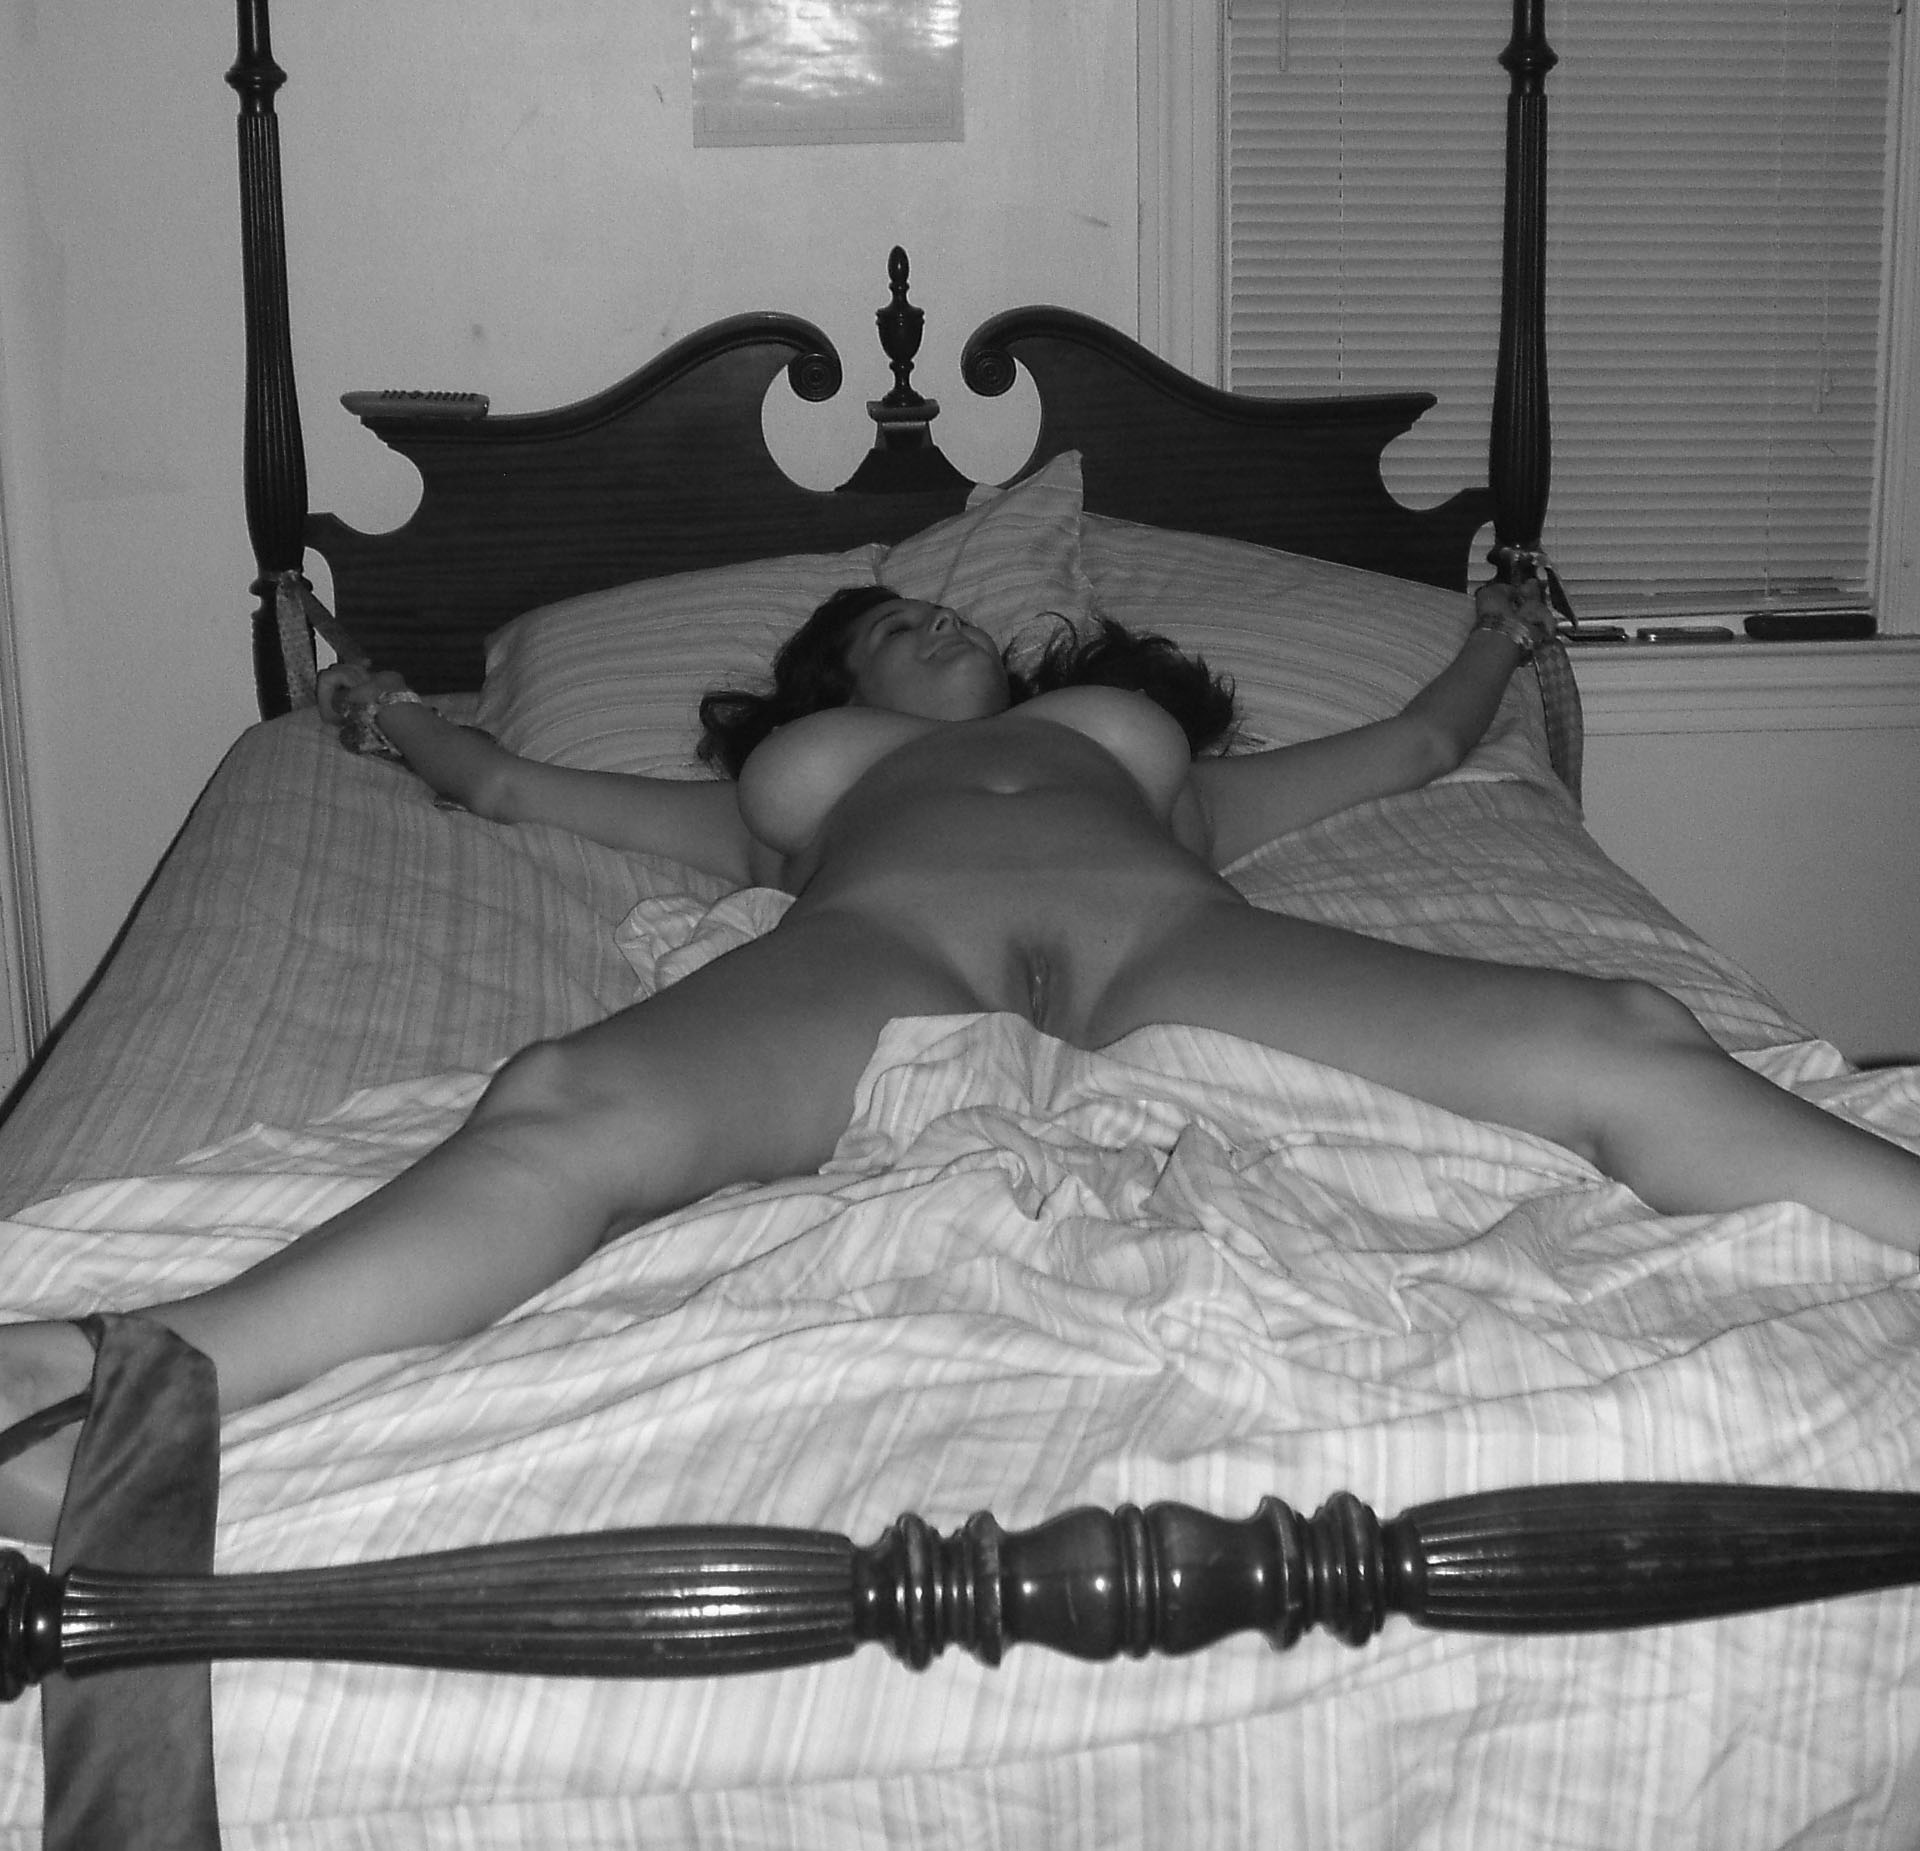 Naked women tied to beds